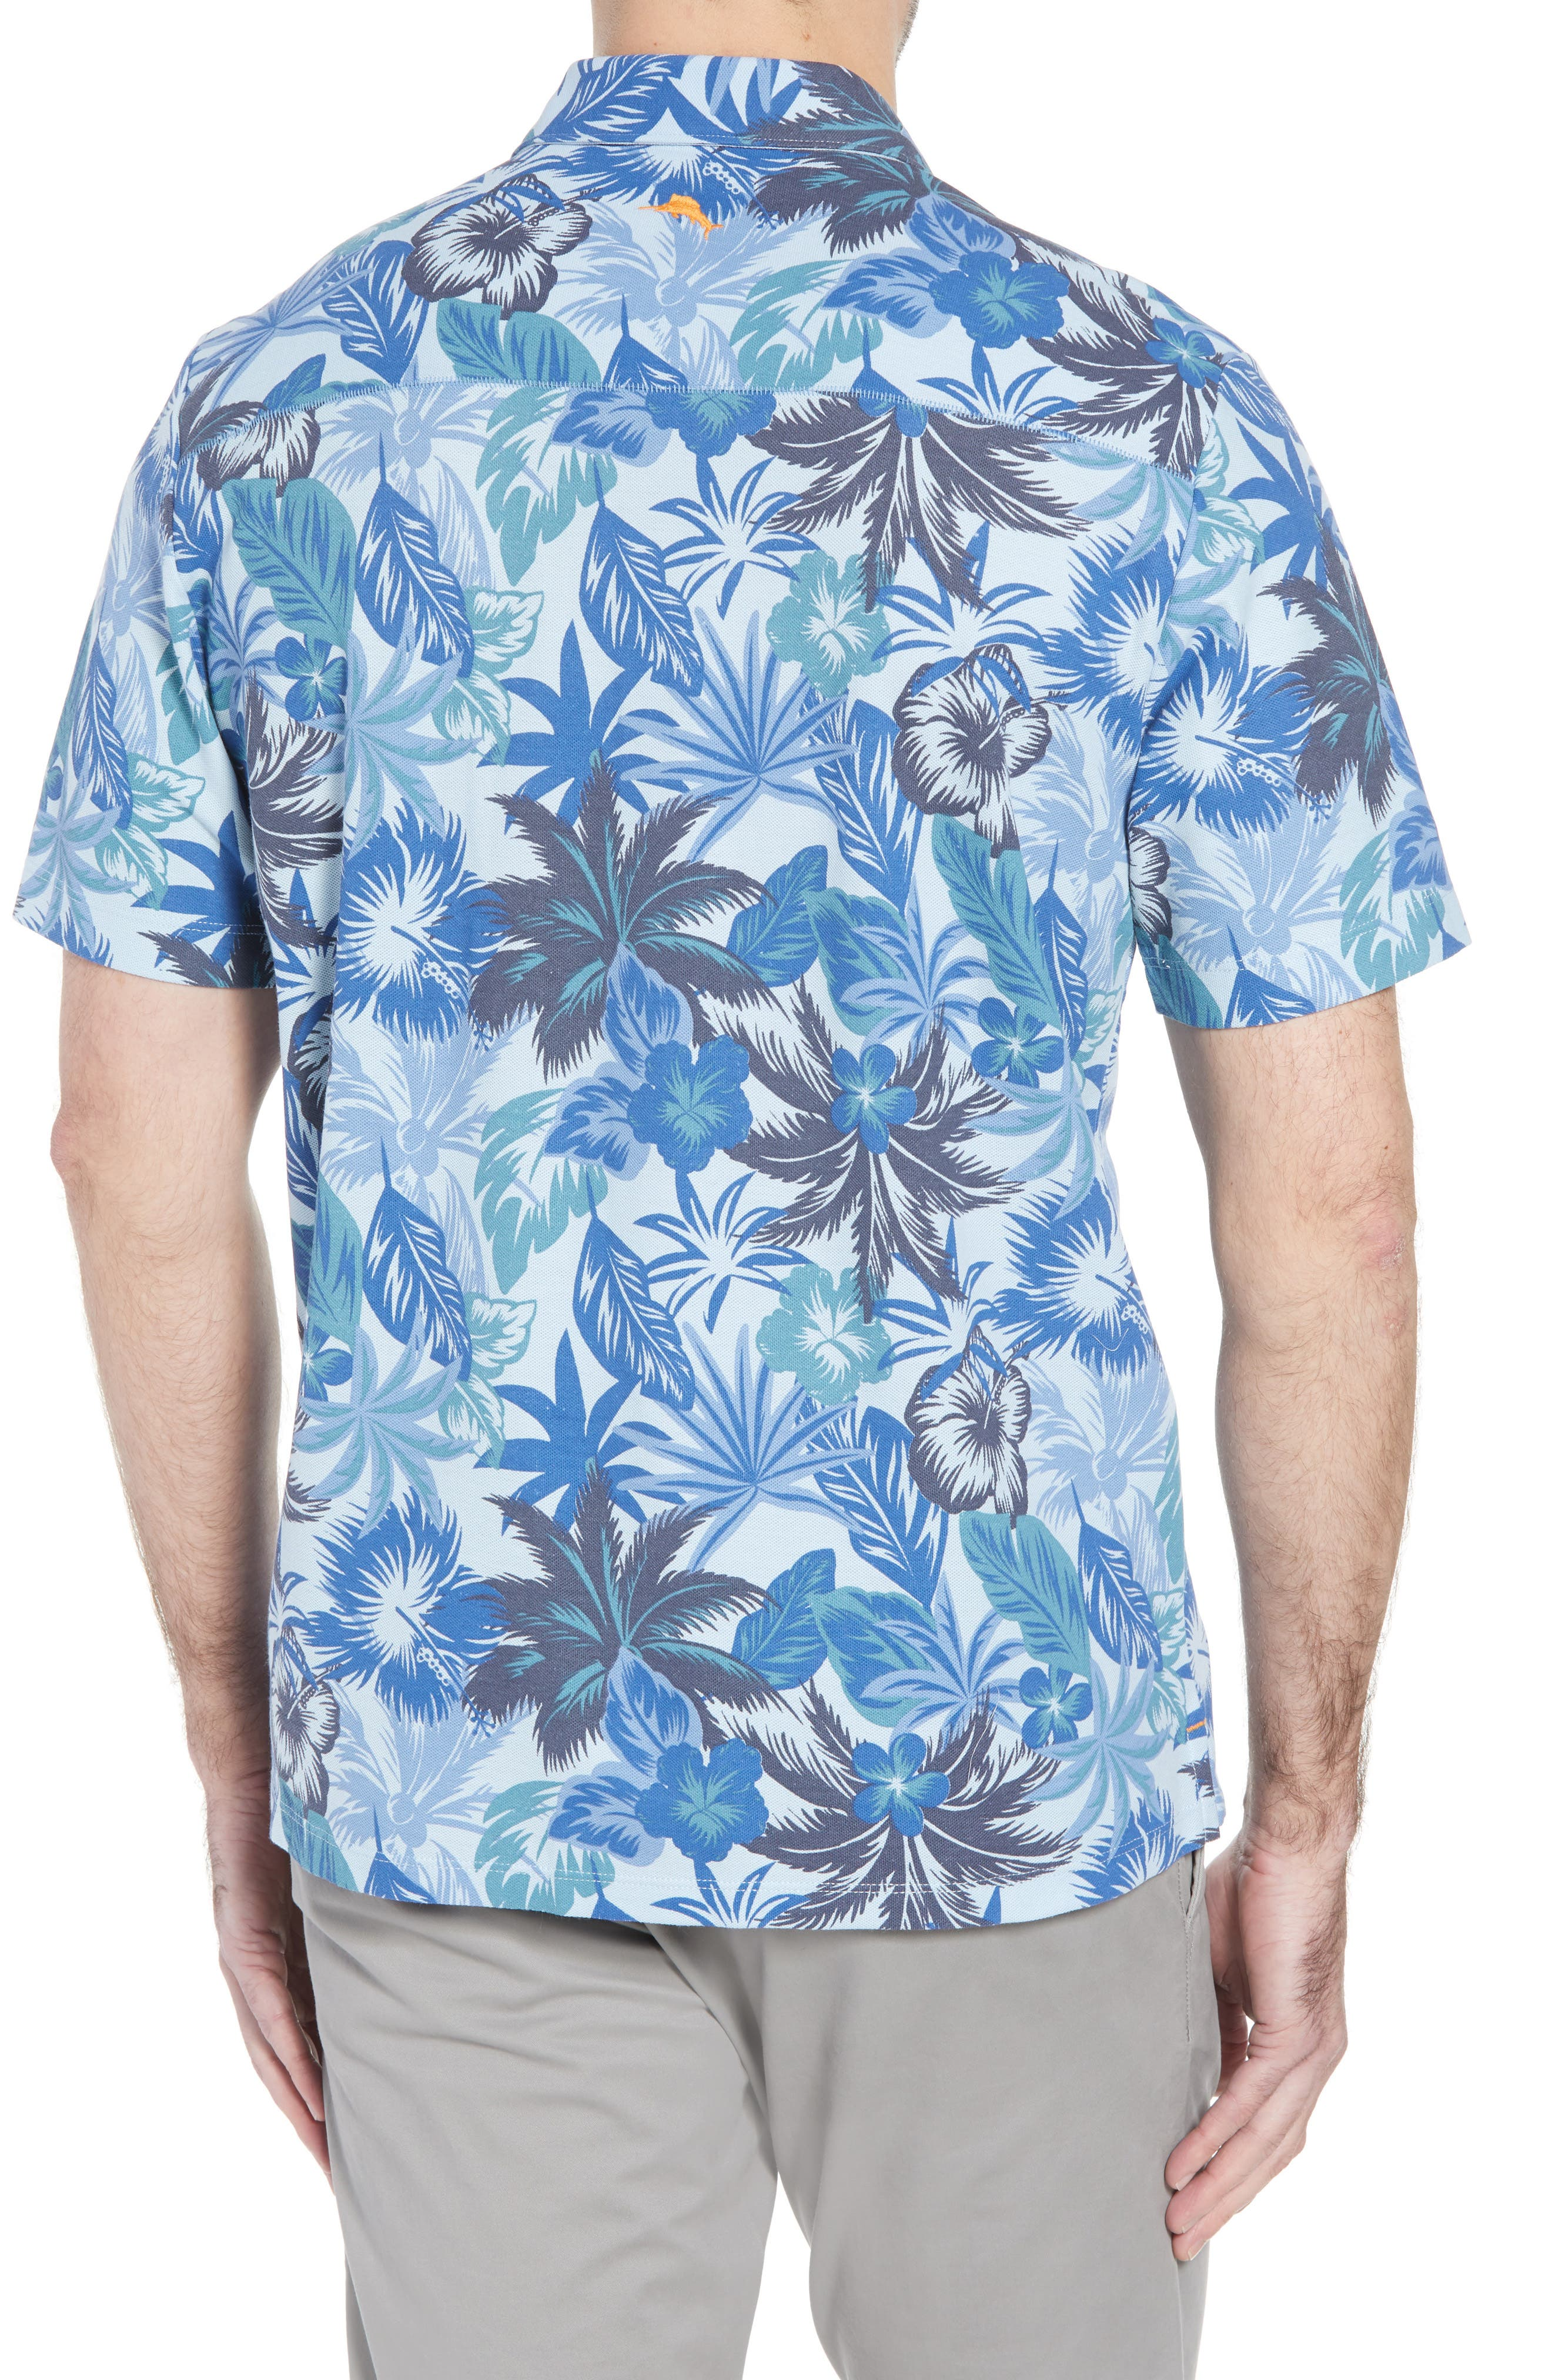 Fuego Floral Camp Shirt,                             Alternate thumbnail 2, color,                             Light Sky